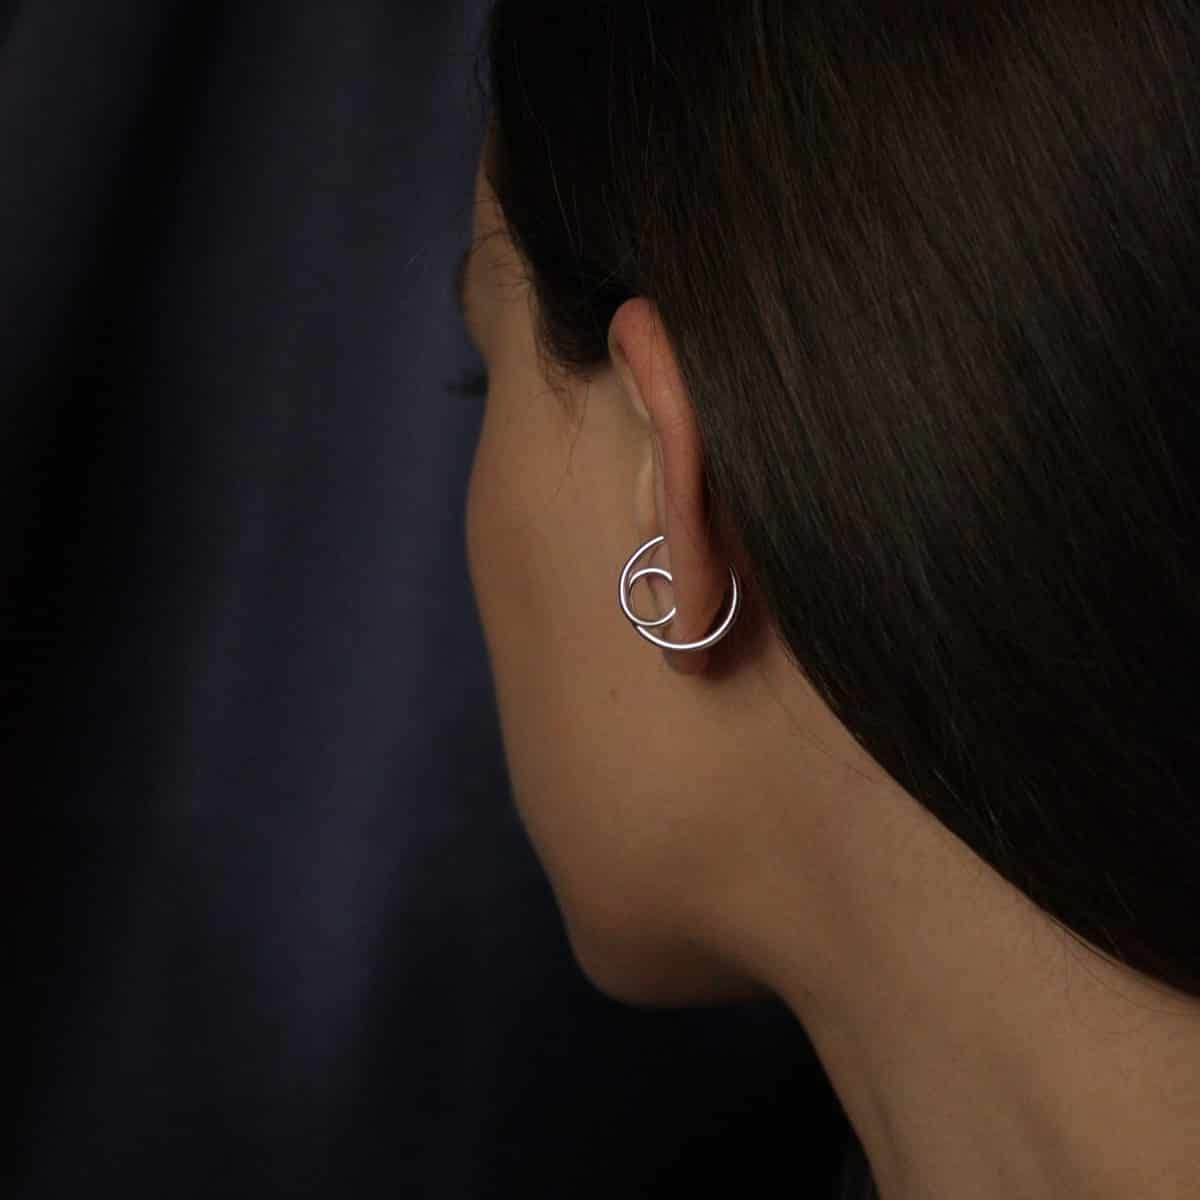 Elevate Ear Cuff In Recycled Argentium Silver By Little Hangings